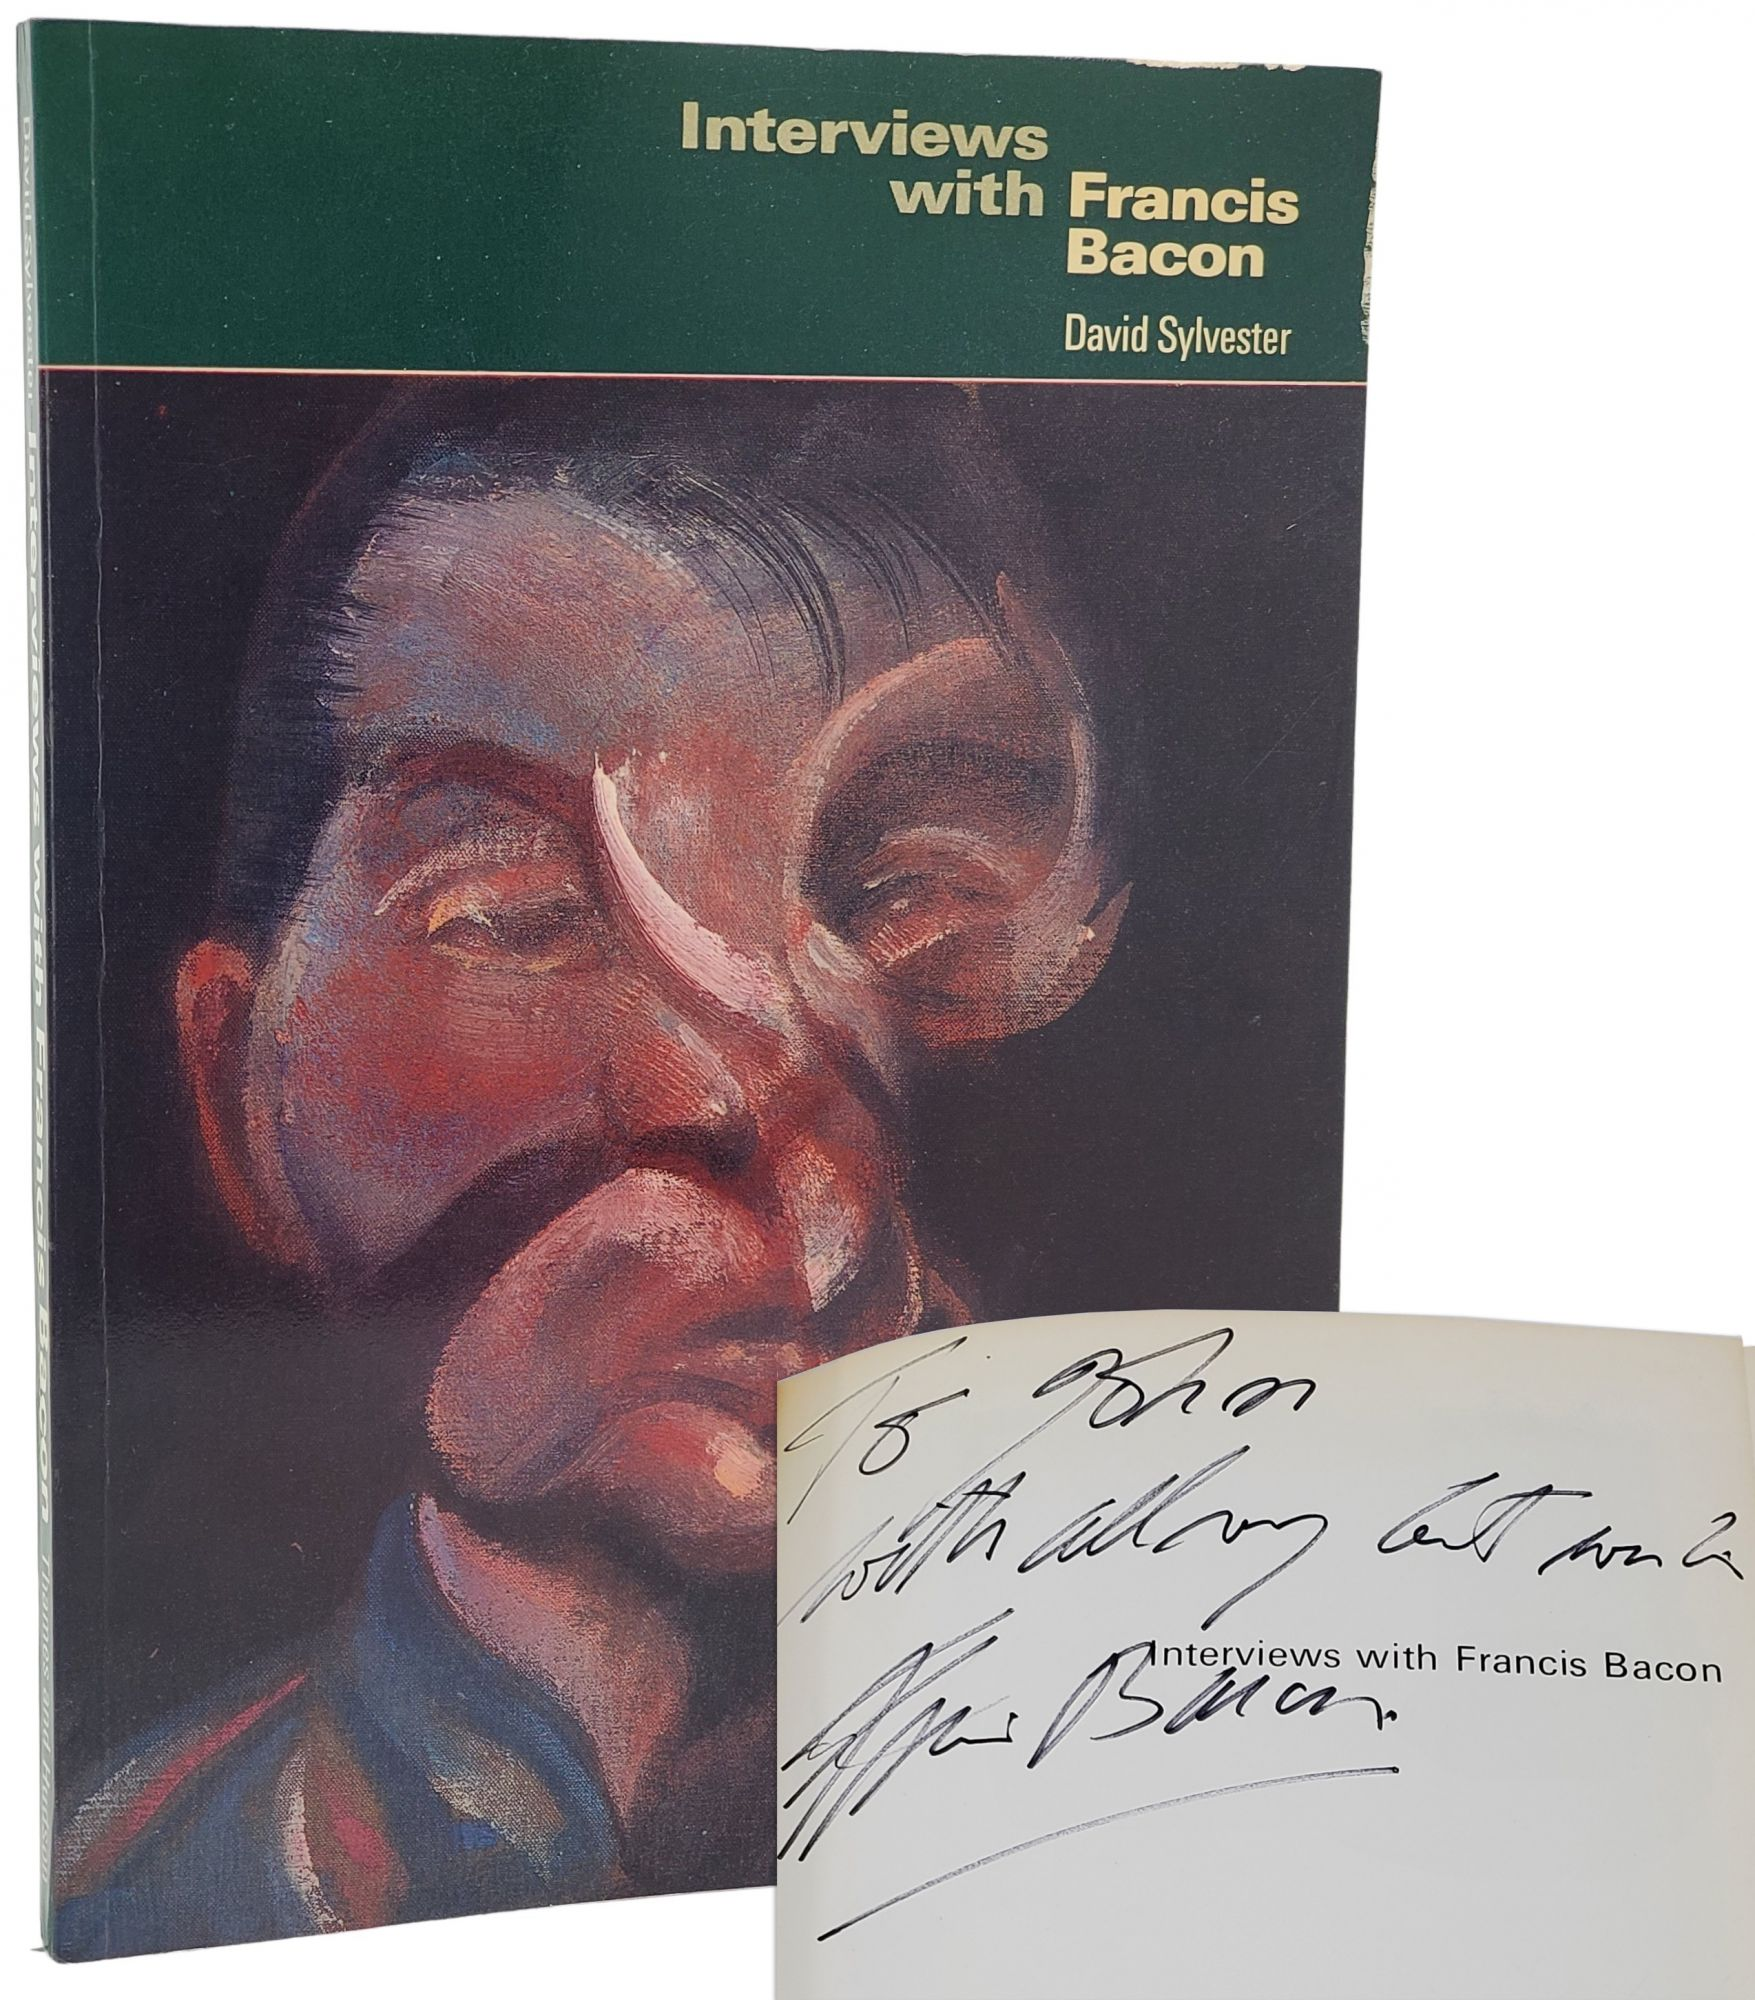 INTERVIEWS WITH FRANCIS BACON [SIGNED & INSCRIBED] With 94 Illustrations. Francis Bacon, David Sylvester.